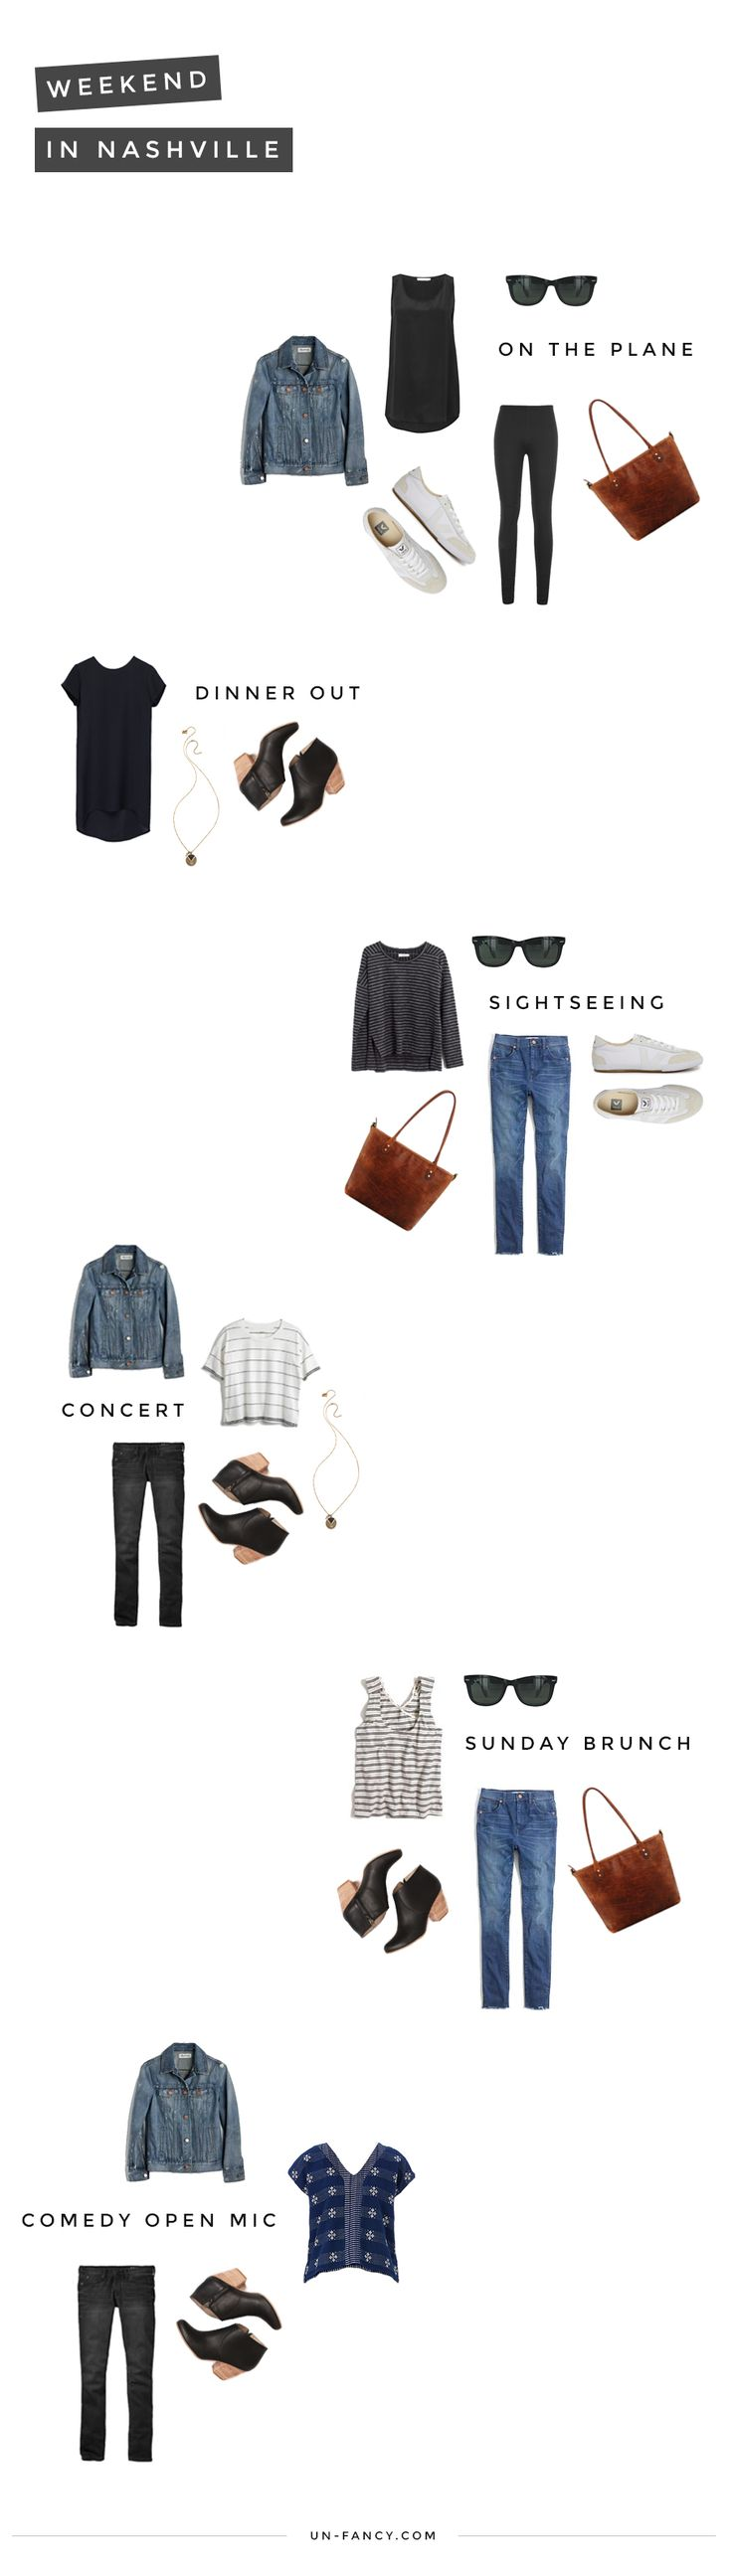 nashville: a weekend of outfits   a packing list